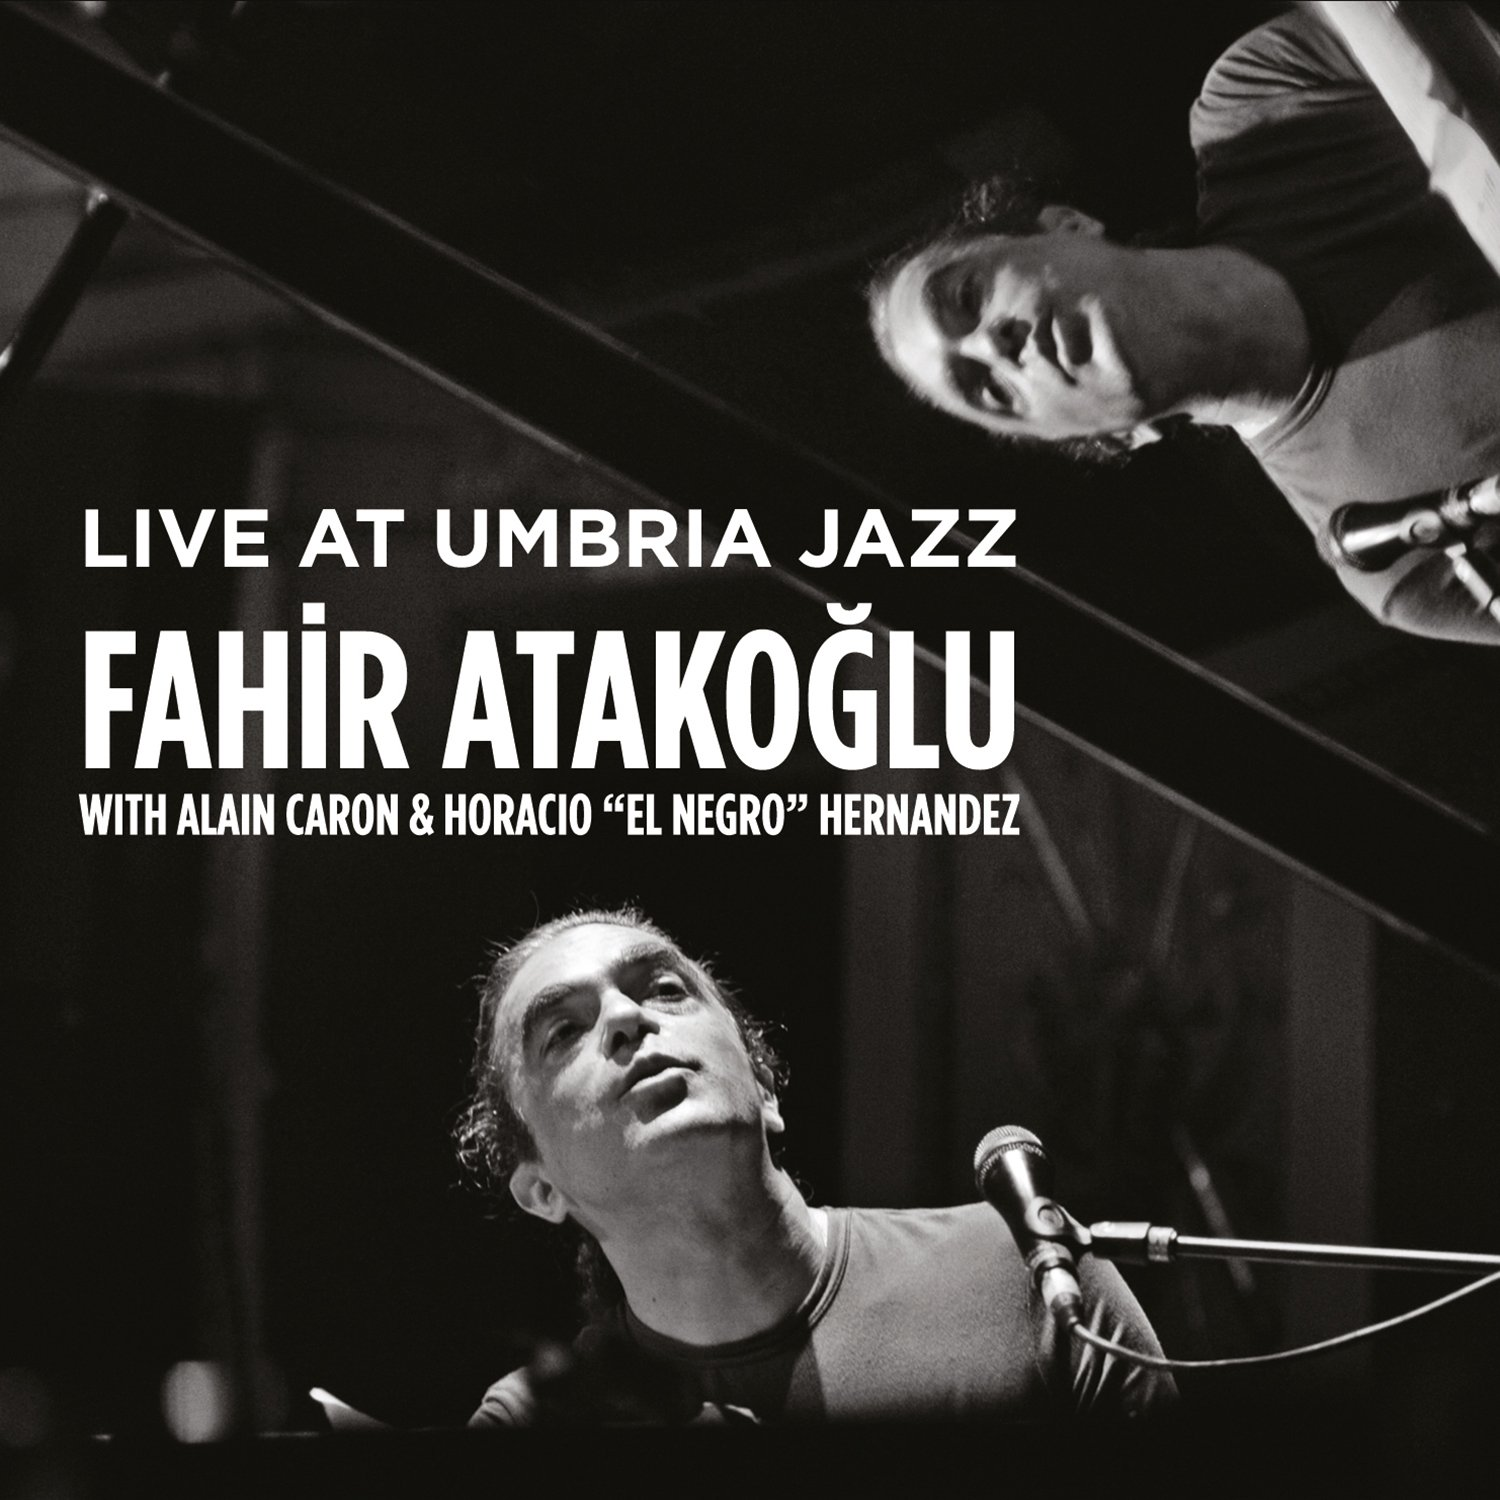 Fahir Atakoğlu Live at Umbria Jazz